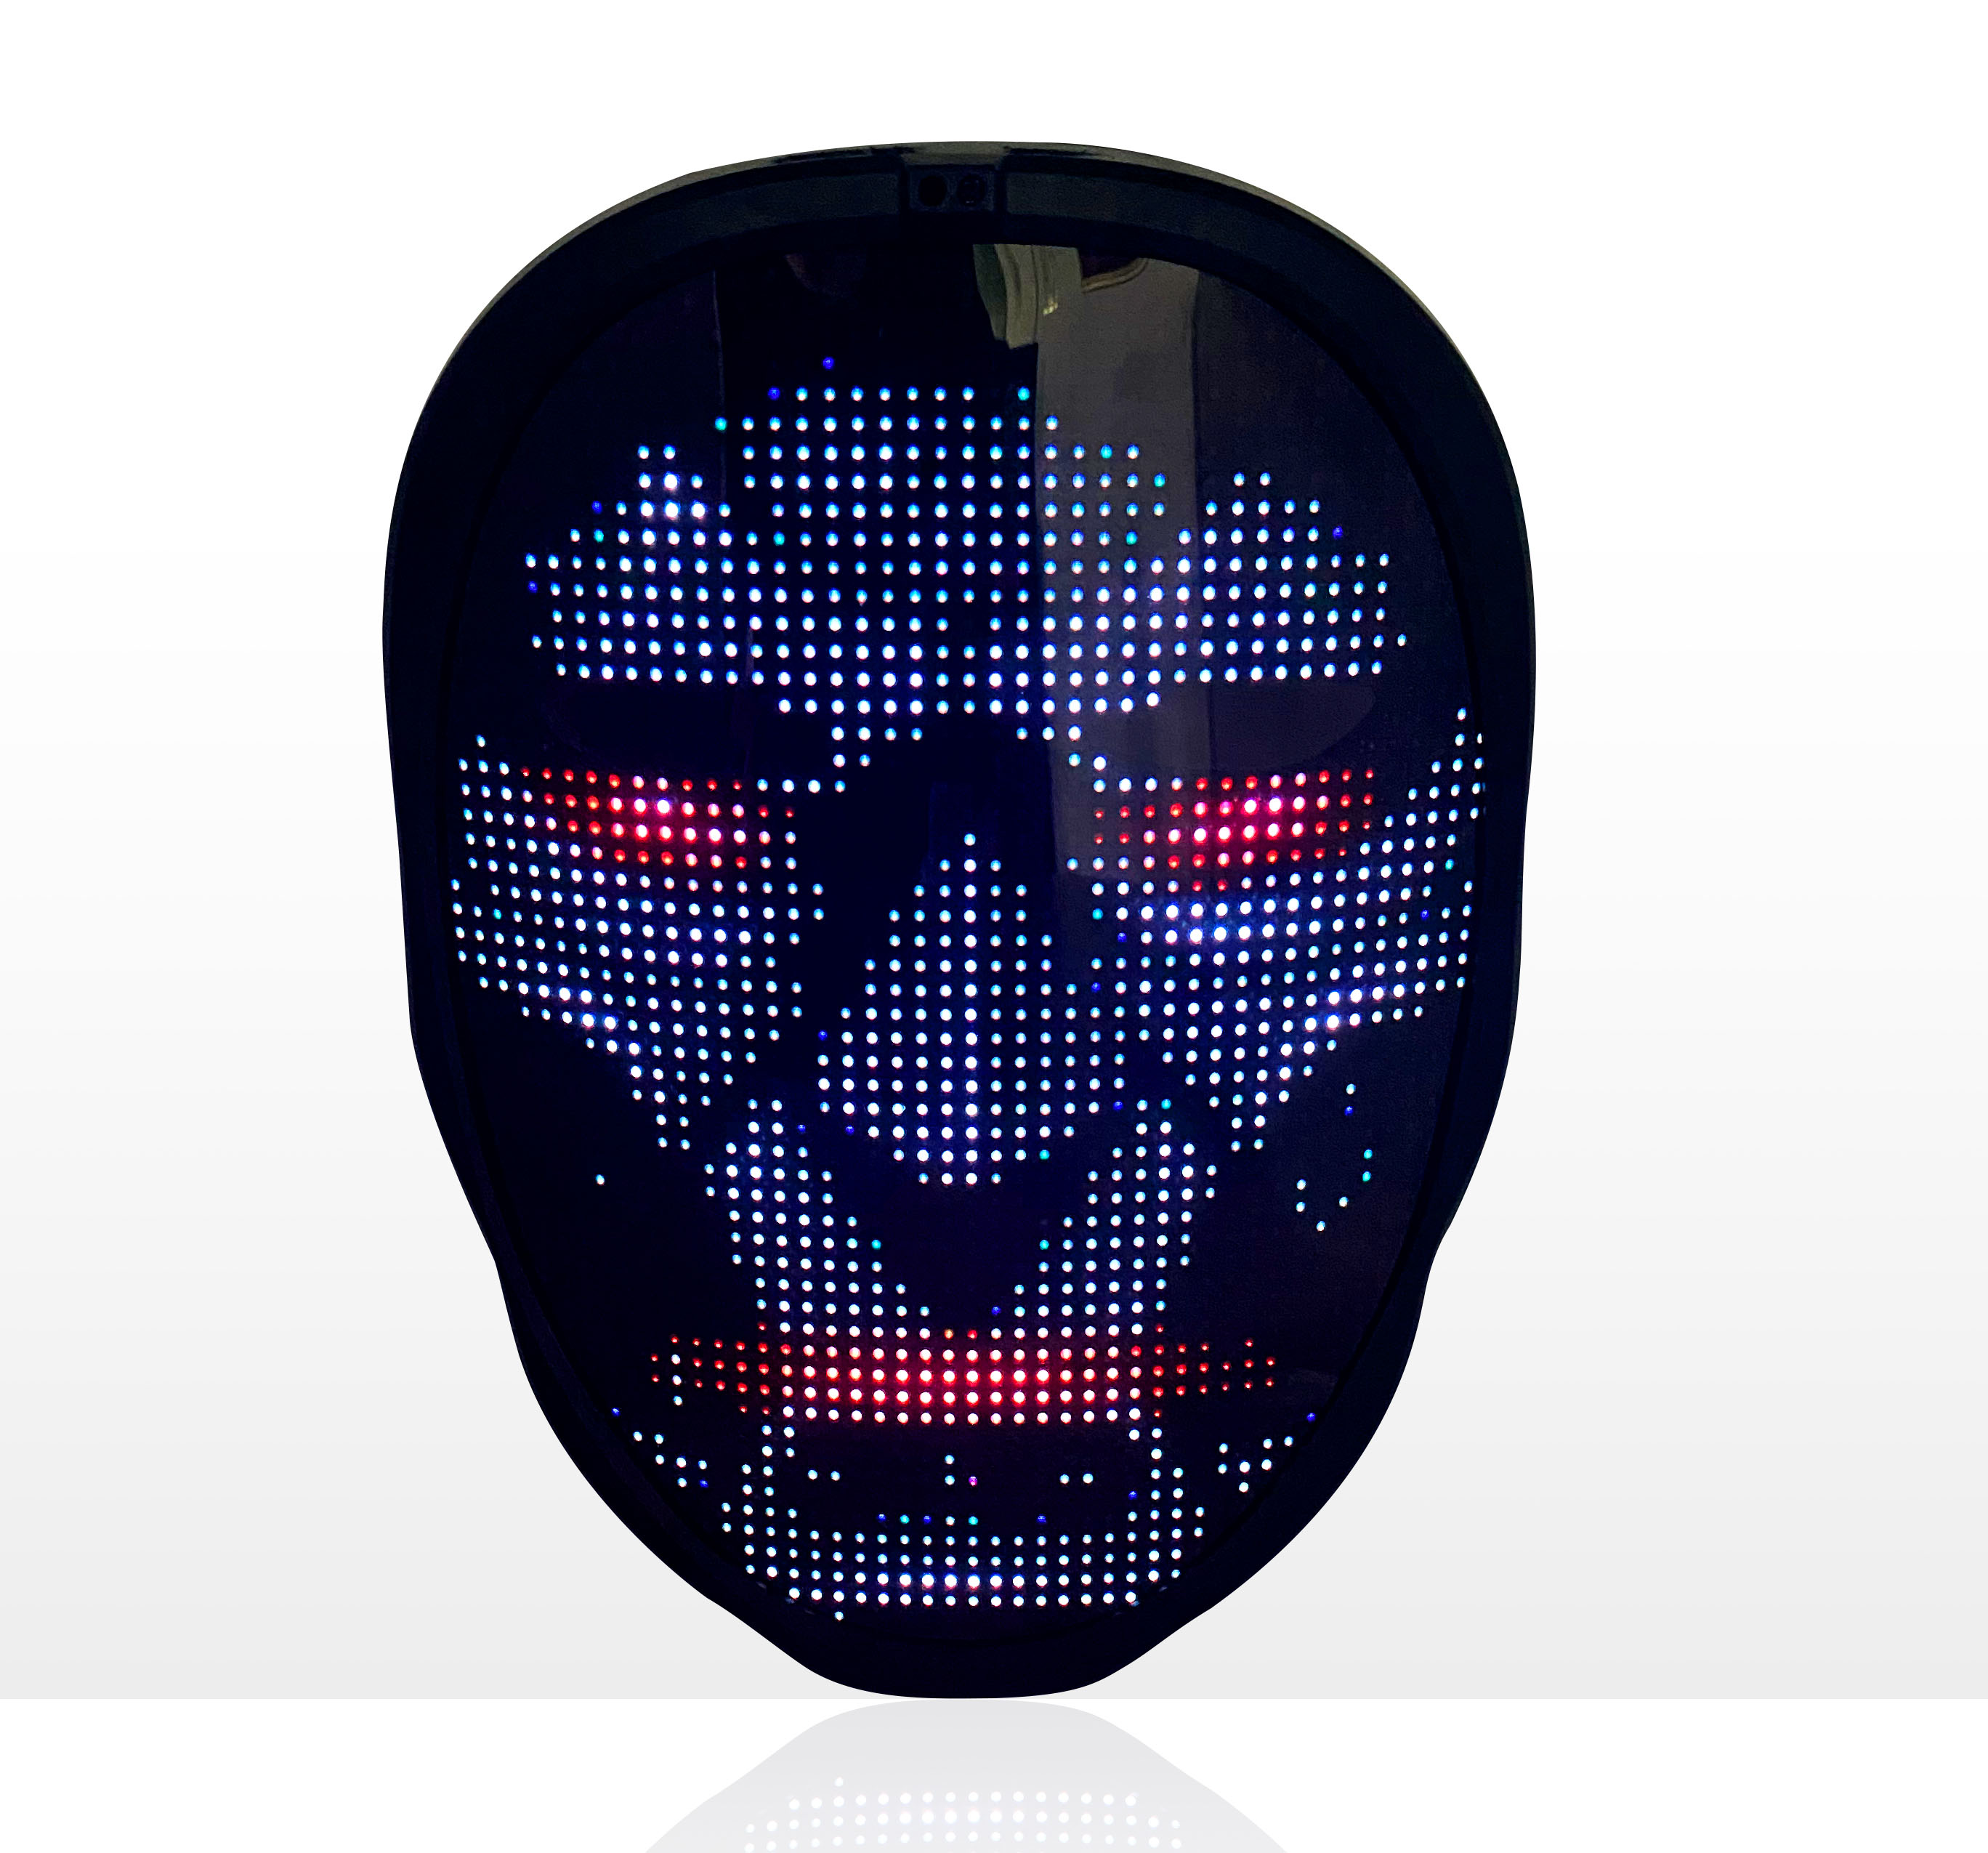 Linli 2020 App Control Program Led Face Changing Mask Face Mask Animated Face  Changing Led Mask For Halloween Party Concert - Buy Changing Mask,Program Led  Face,Animated Face Changing Led Mask Product on